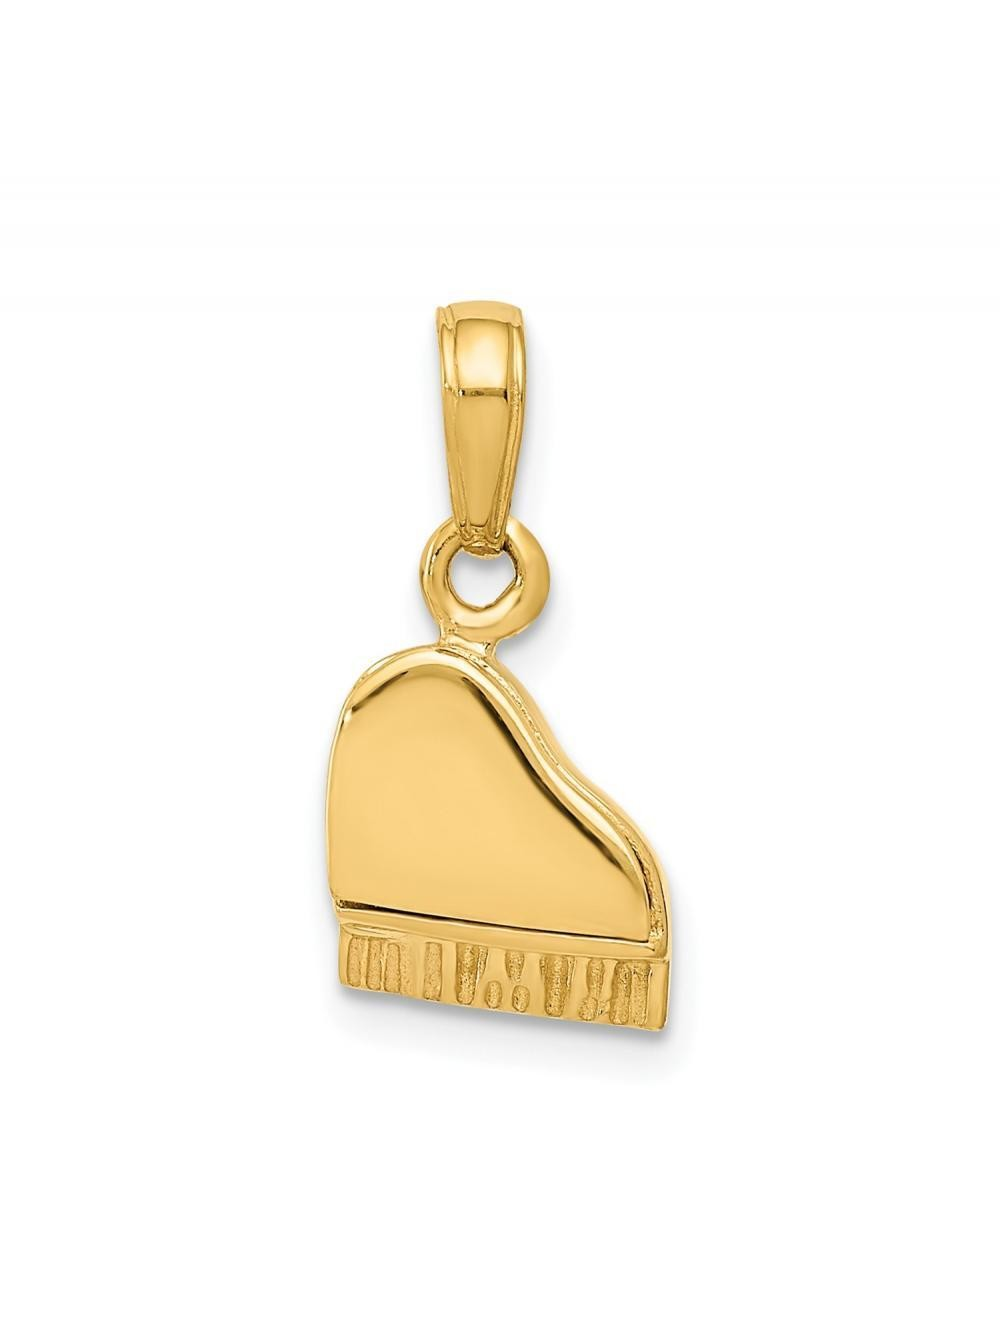 14k Yellow Gold Polished Piano Charm Pendant - 15mm